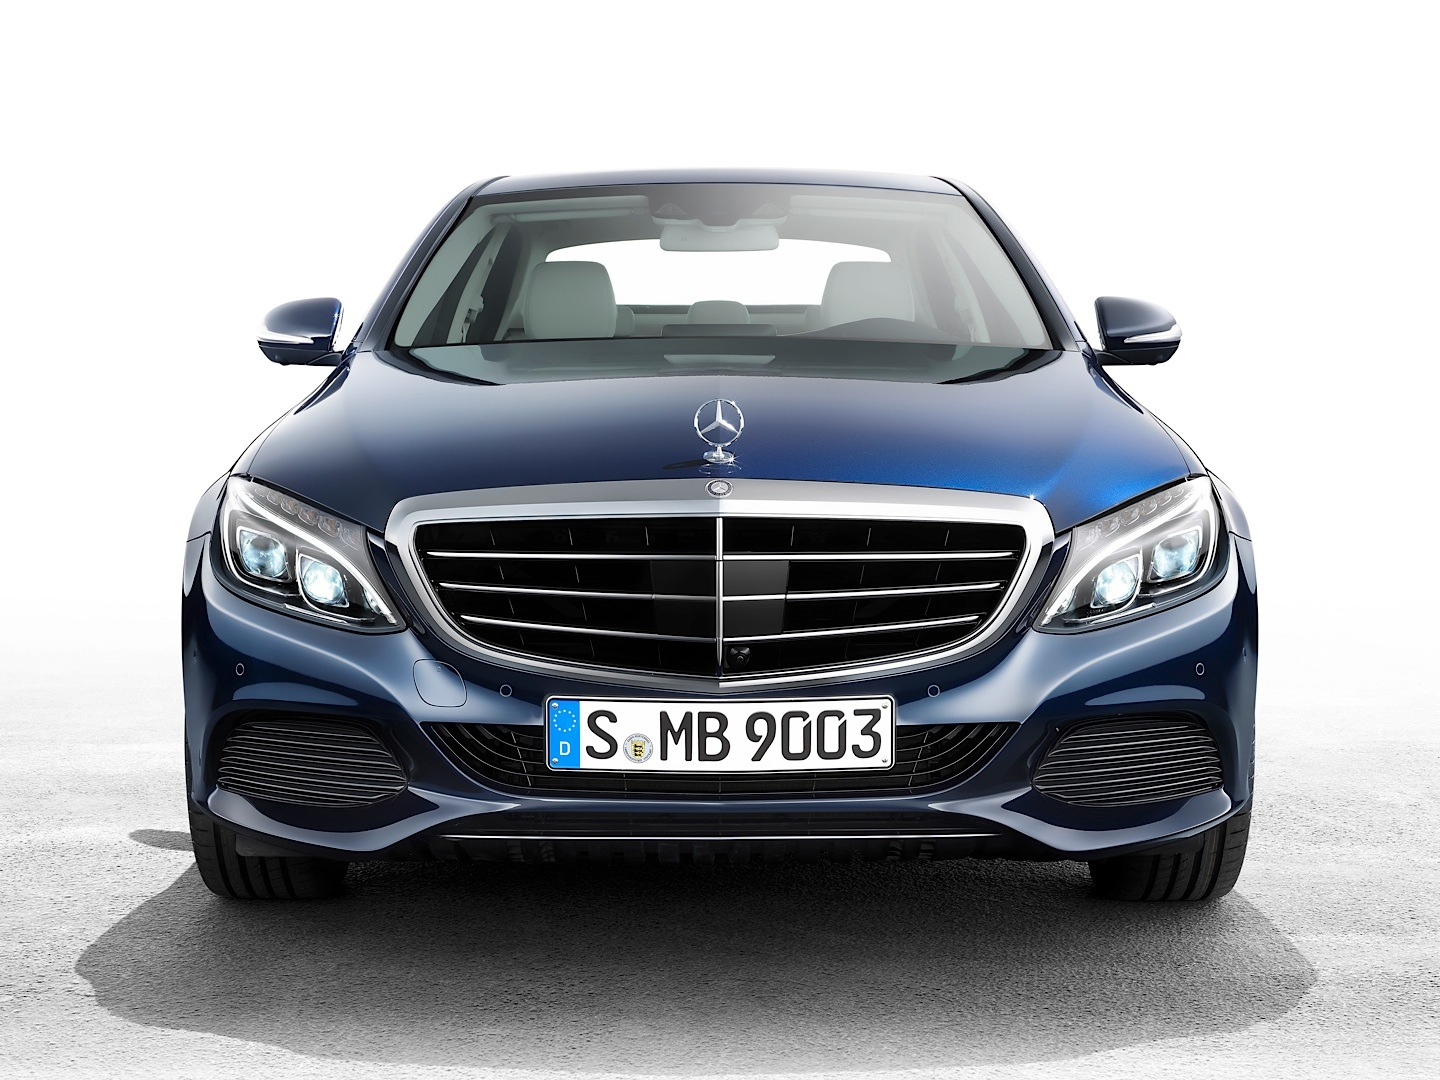 2015 mercedes benz c class sedan review msrp mpg. Black Bedroom Furniture Sets. Home Design Ideas